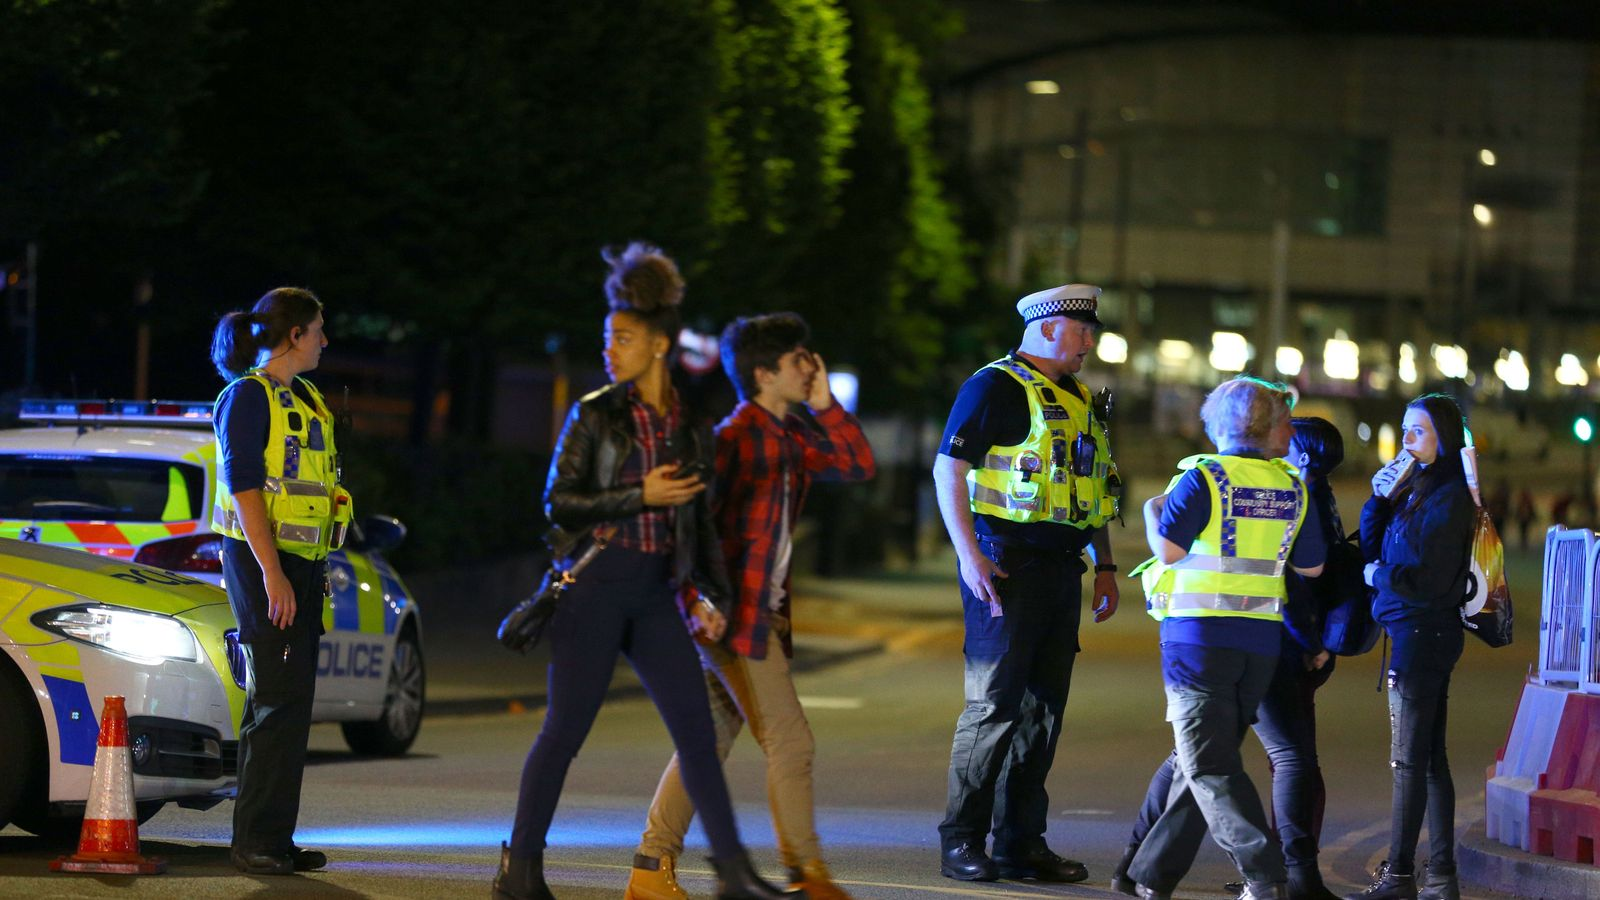 Manchester Police Arrest Suspect After Explosion At Ariana Grande Concert